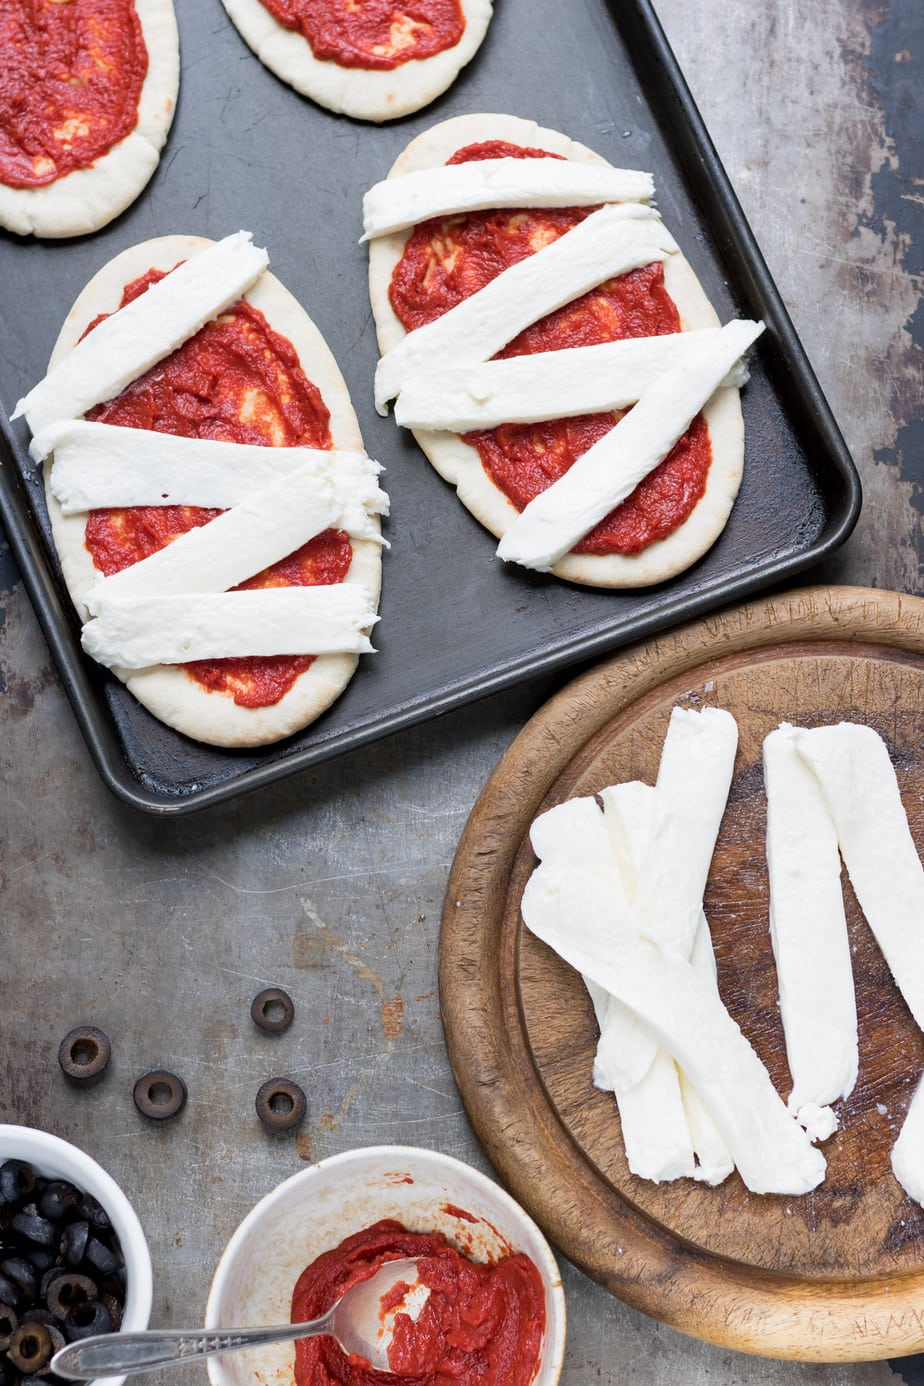 Pita breads with pizza sauce and strips of mozzarella cheese.